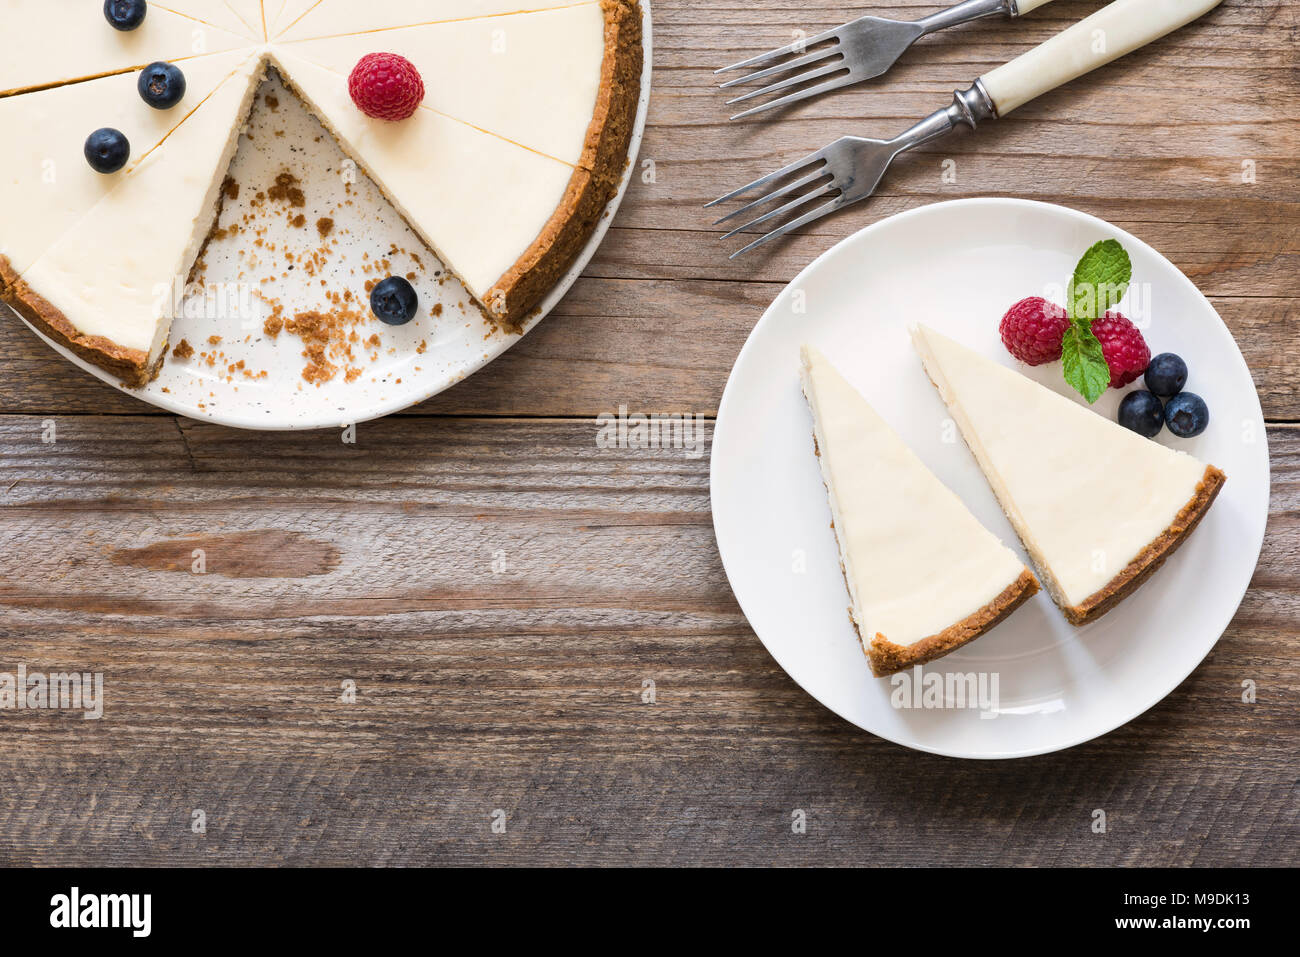 Classic New York Cheesecake On Rustic Wood, Top View and Copy Space For Text - Stock Image